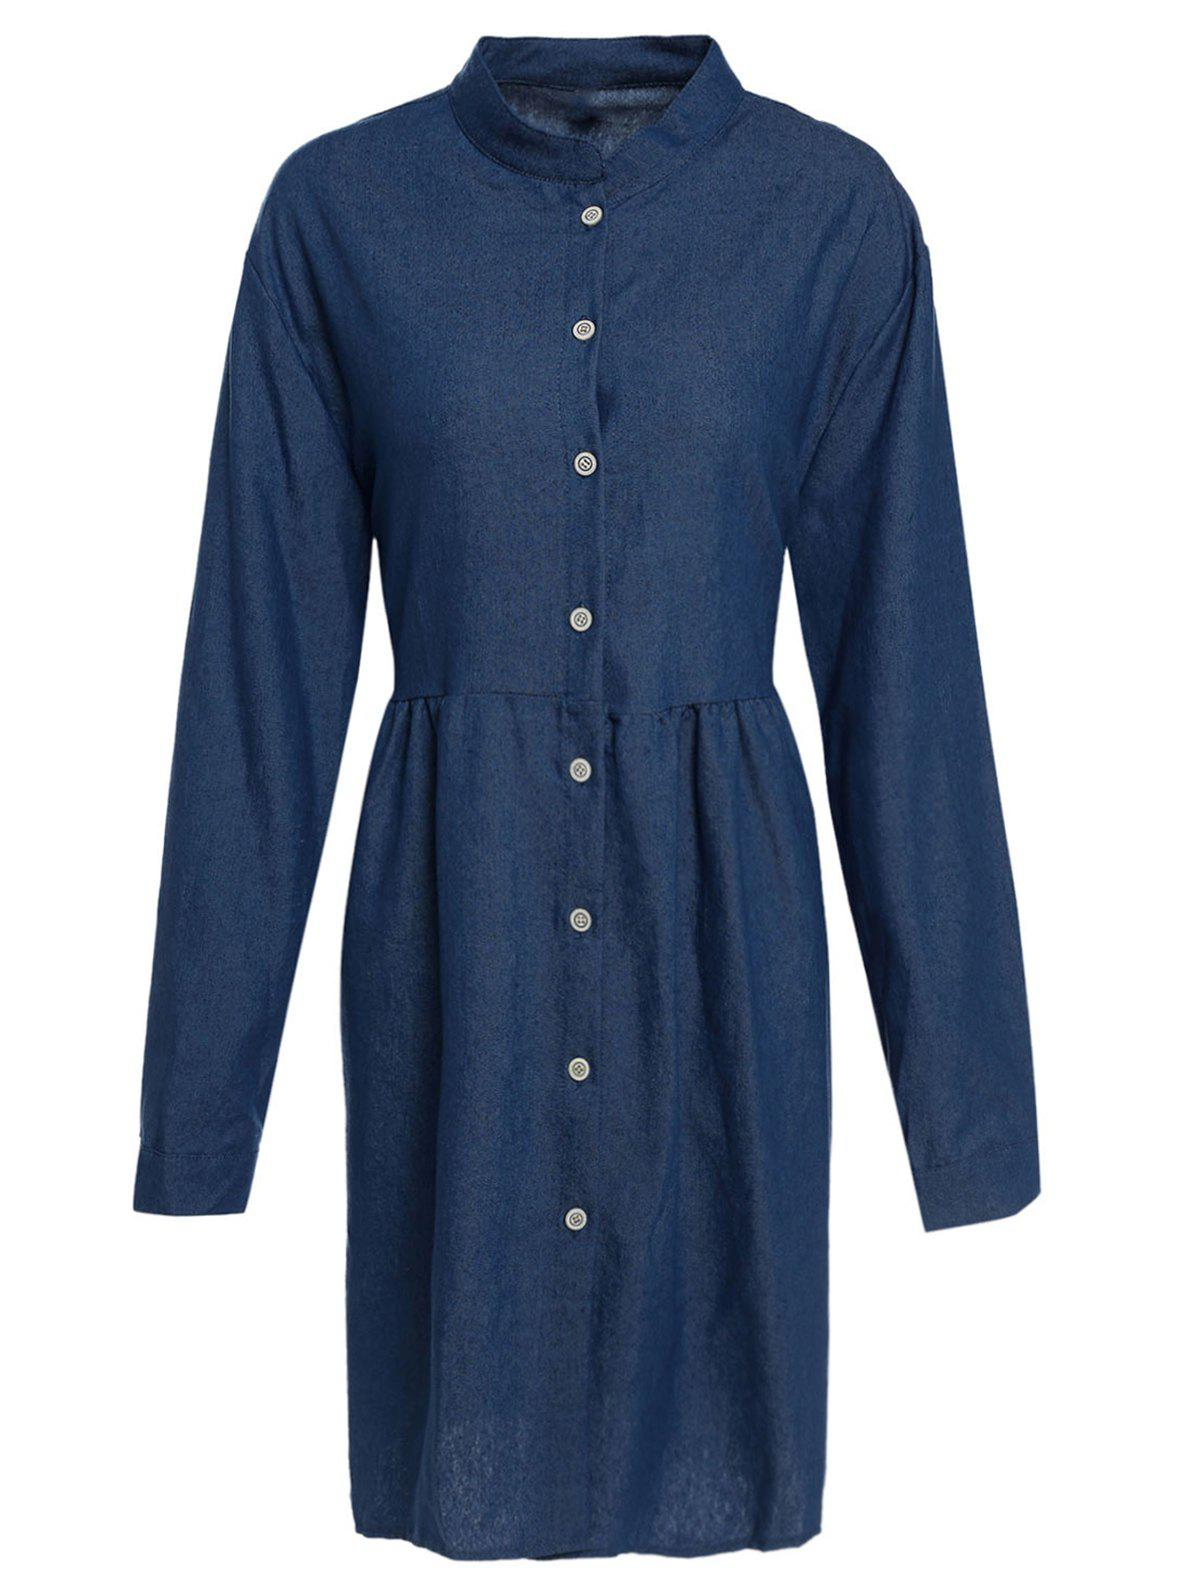 Fresh Style Solid Color Stand Collar Loose Denim Shirt Dress For Women